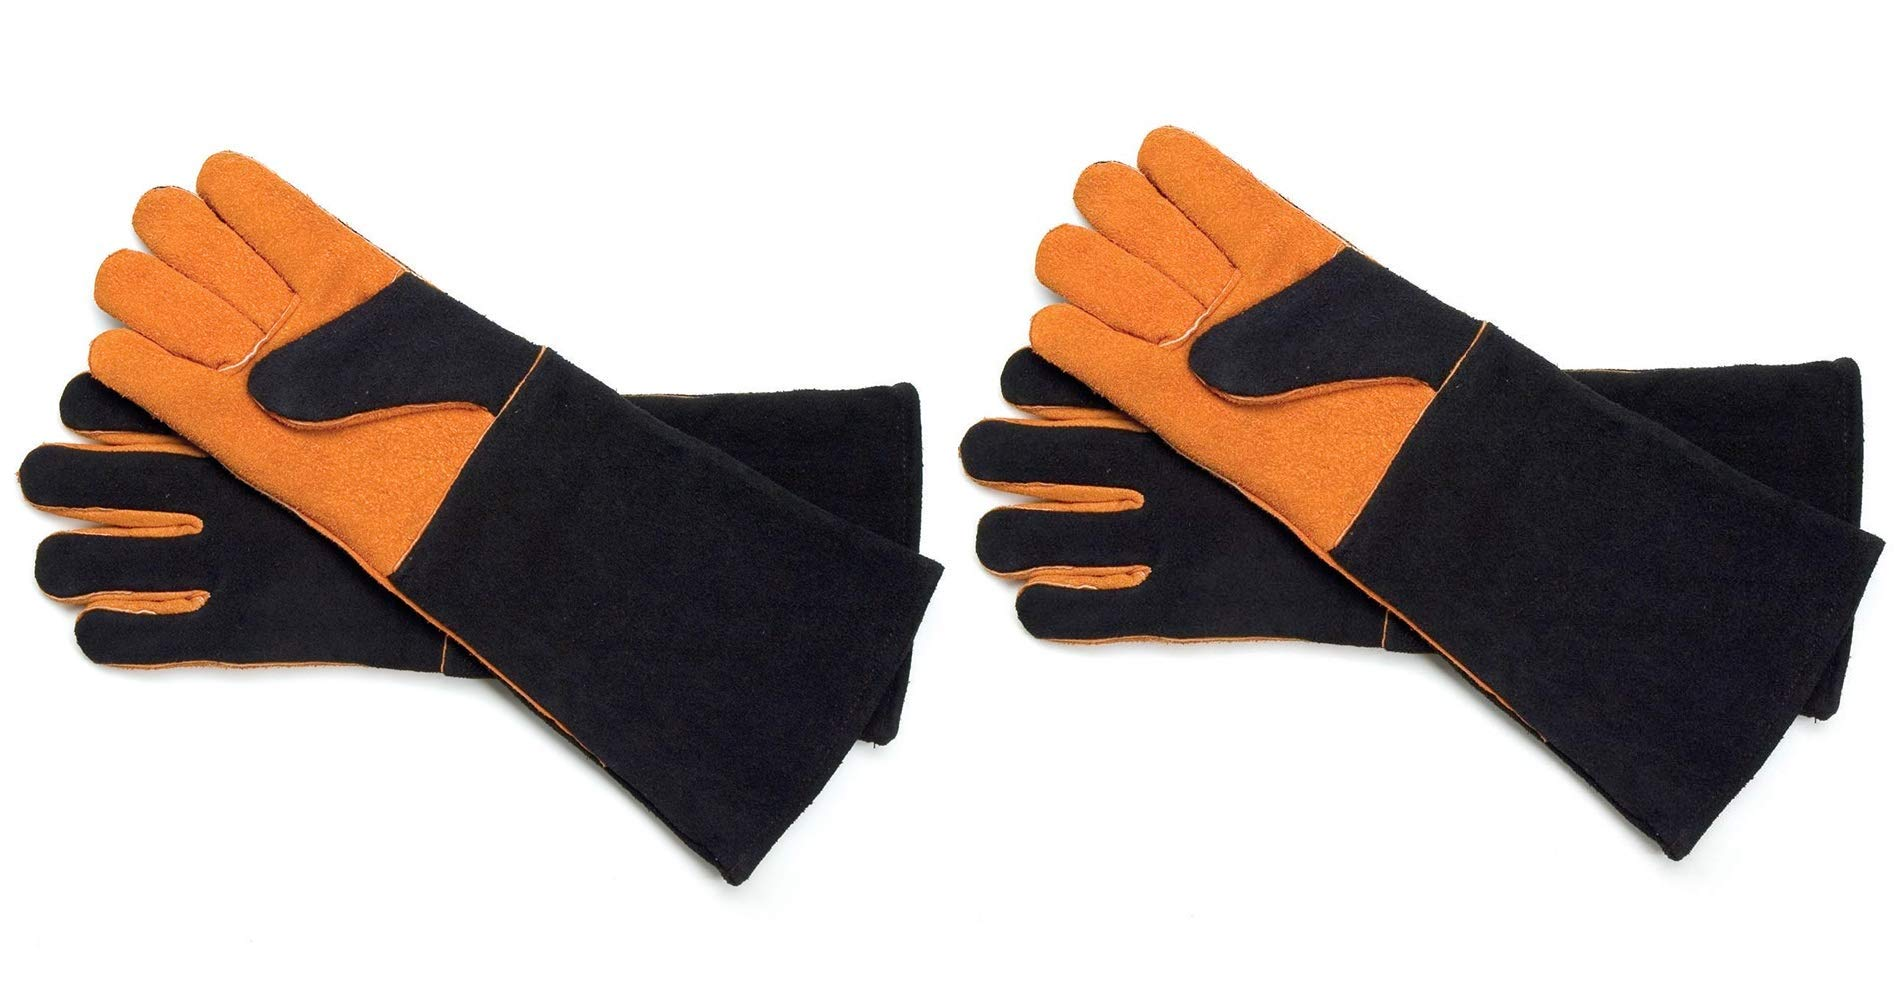 Steven Raichlen Best of Barbecue Extra Long Suede Grill Gloves (Pair) - SR8038 (Тwo Рack)